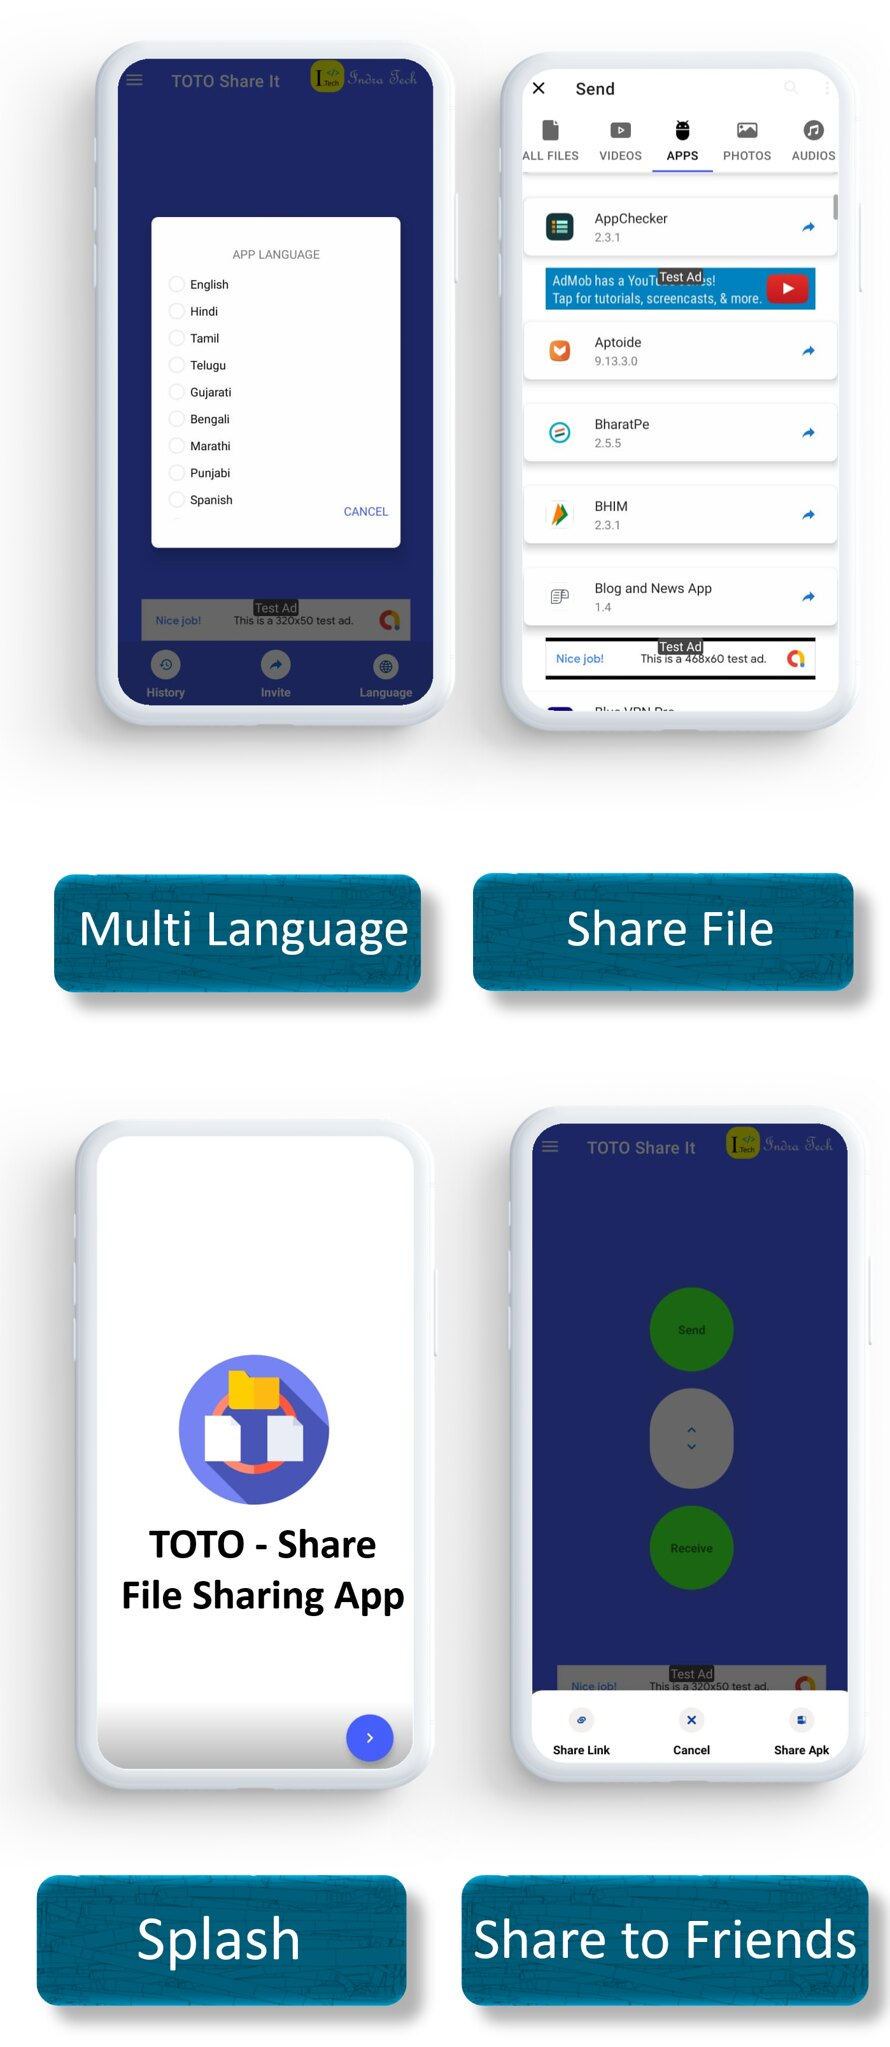 TOTO - Share App | Share Files | Admob Ads | Sharing App | Onesignal Notification - 5